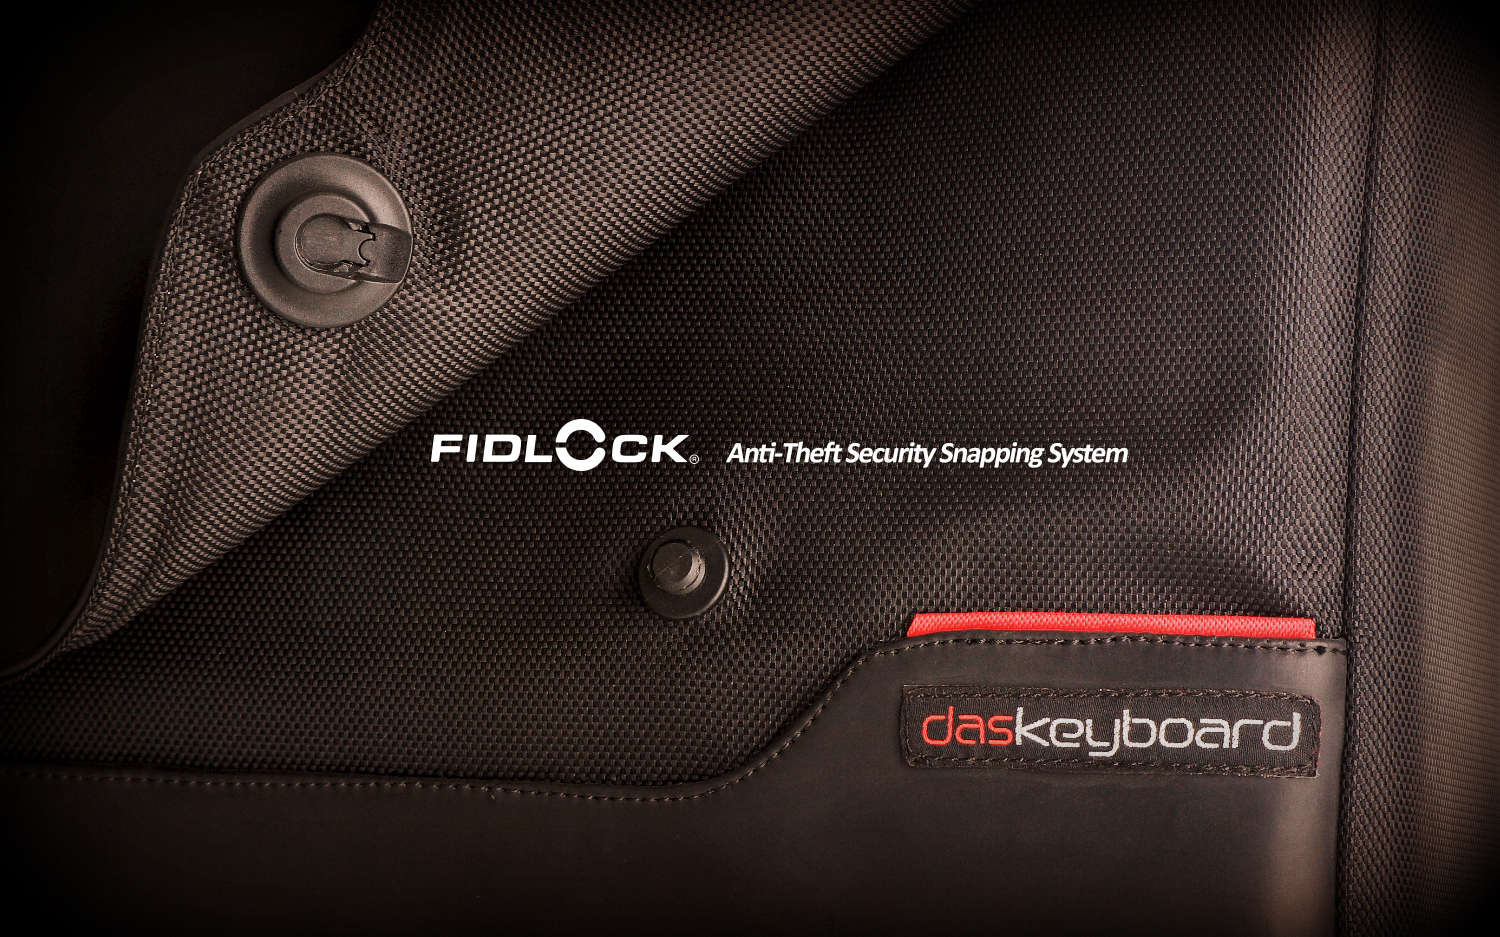 Hackshield Messenger bag fidlock